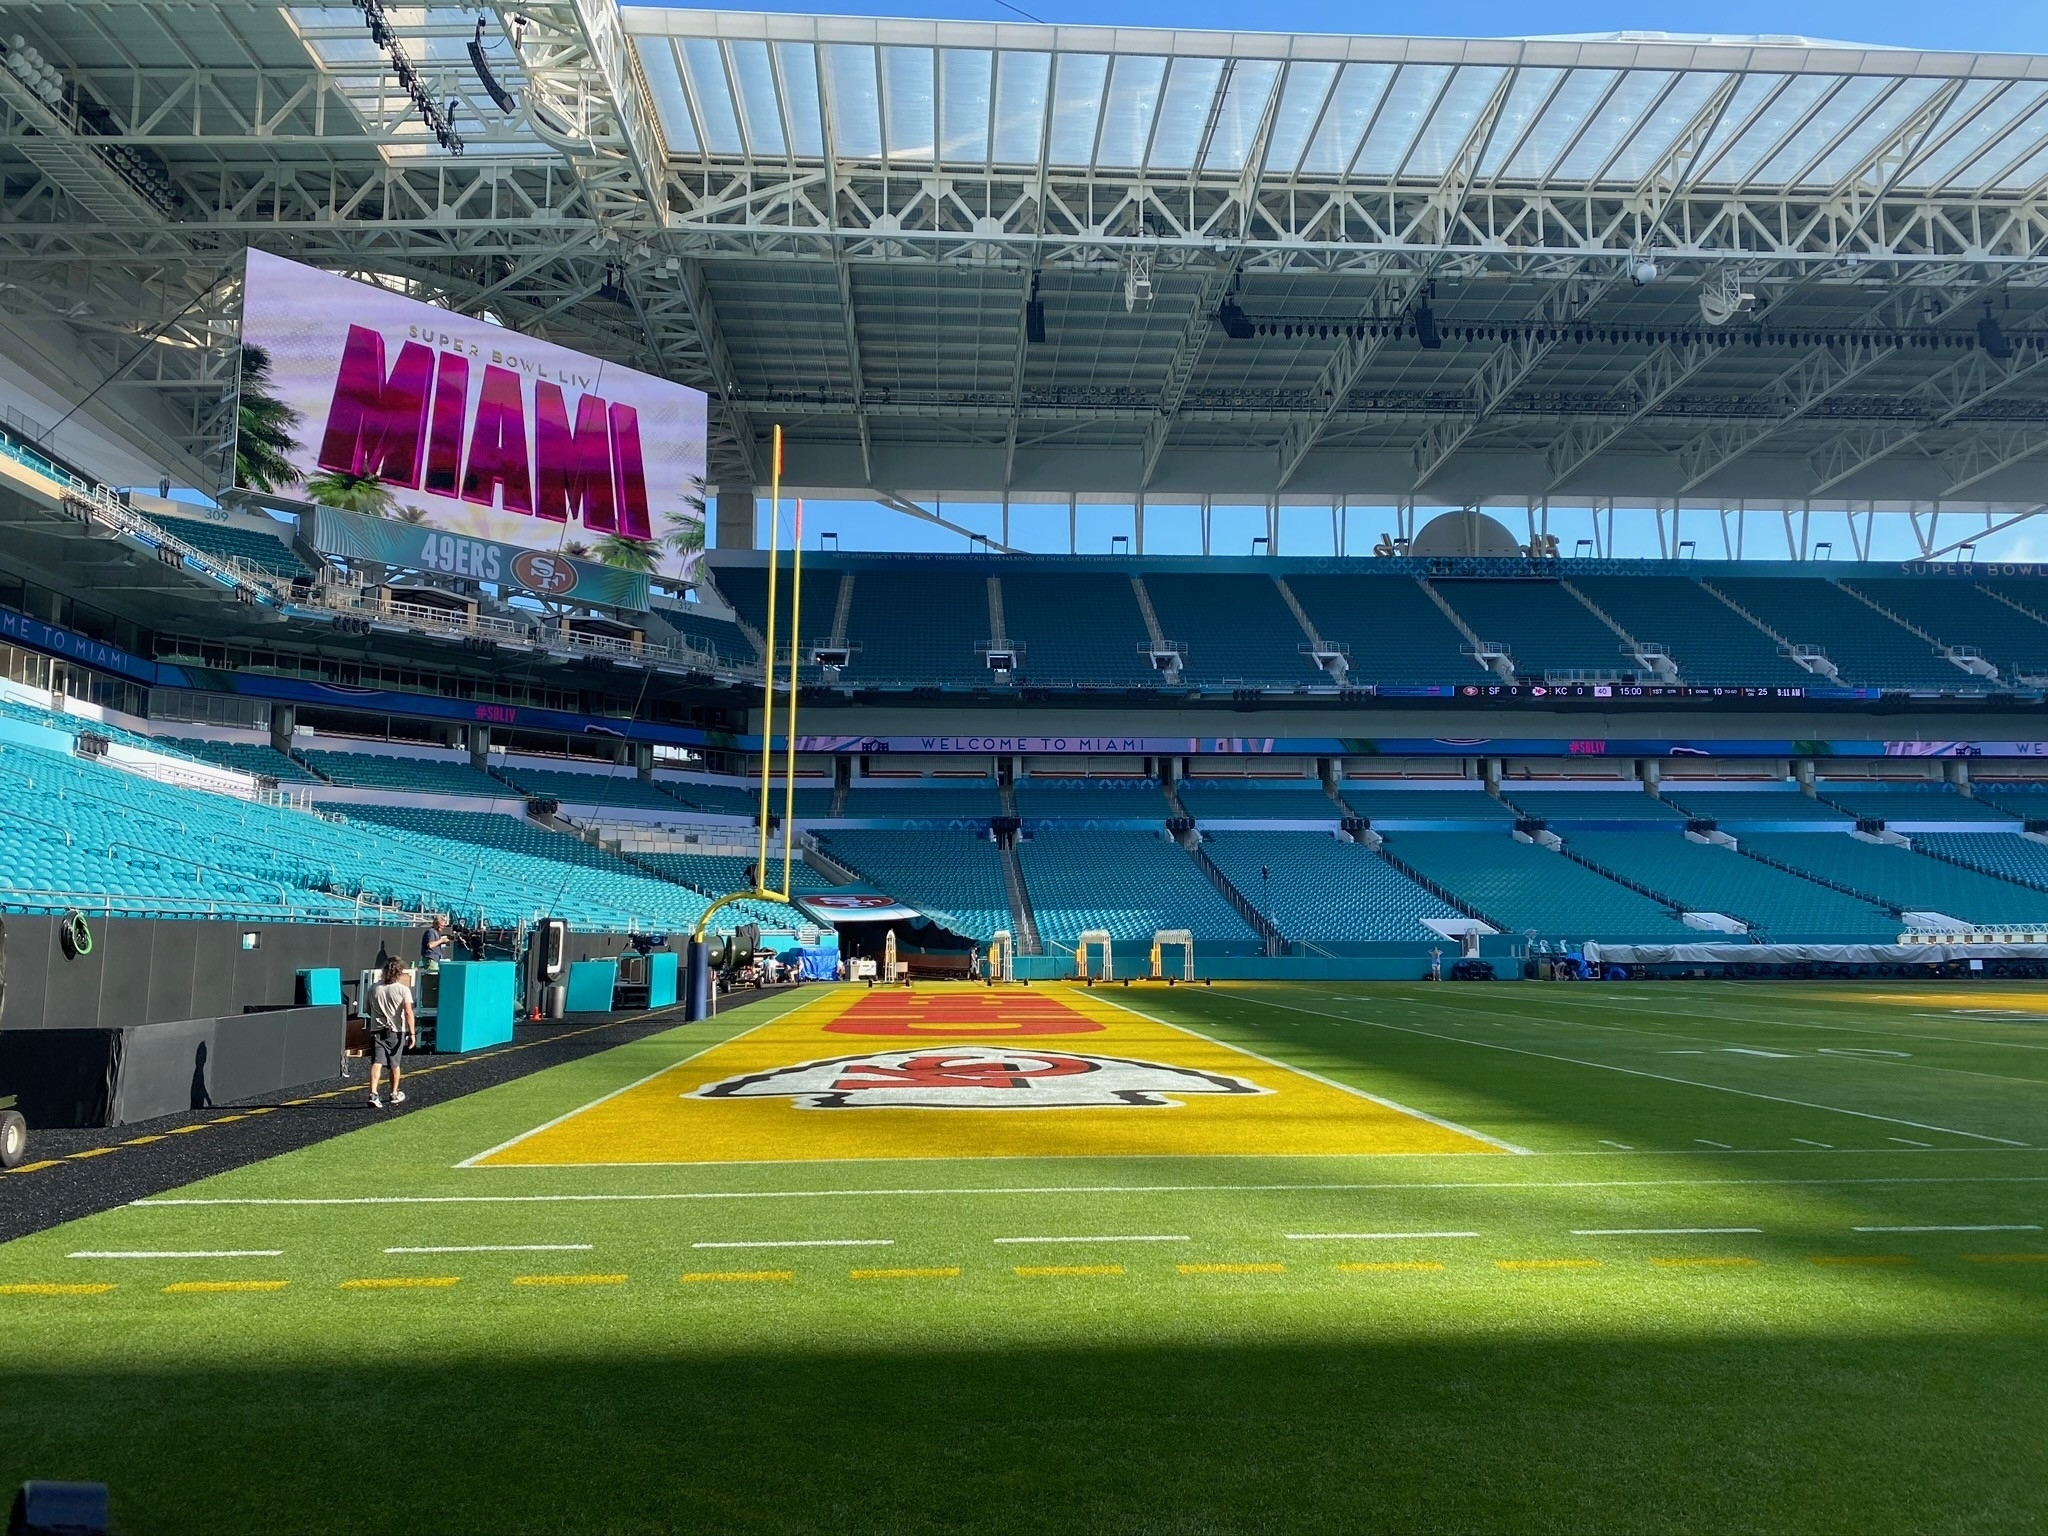 Super Bowl 2020: Hard Rock Stadium Food Guide | Miami New Times intended for Miami Super Bowl 2020 Video